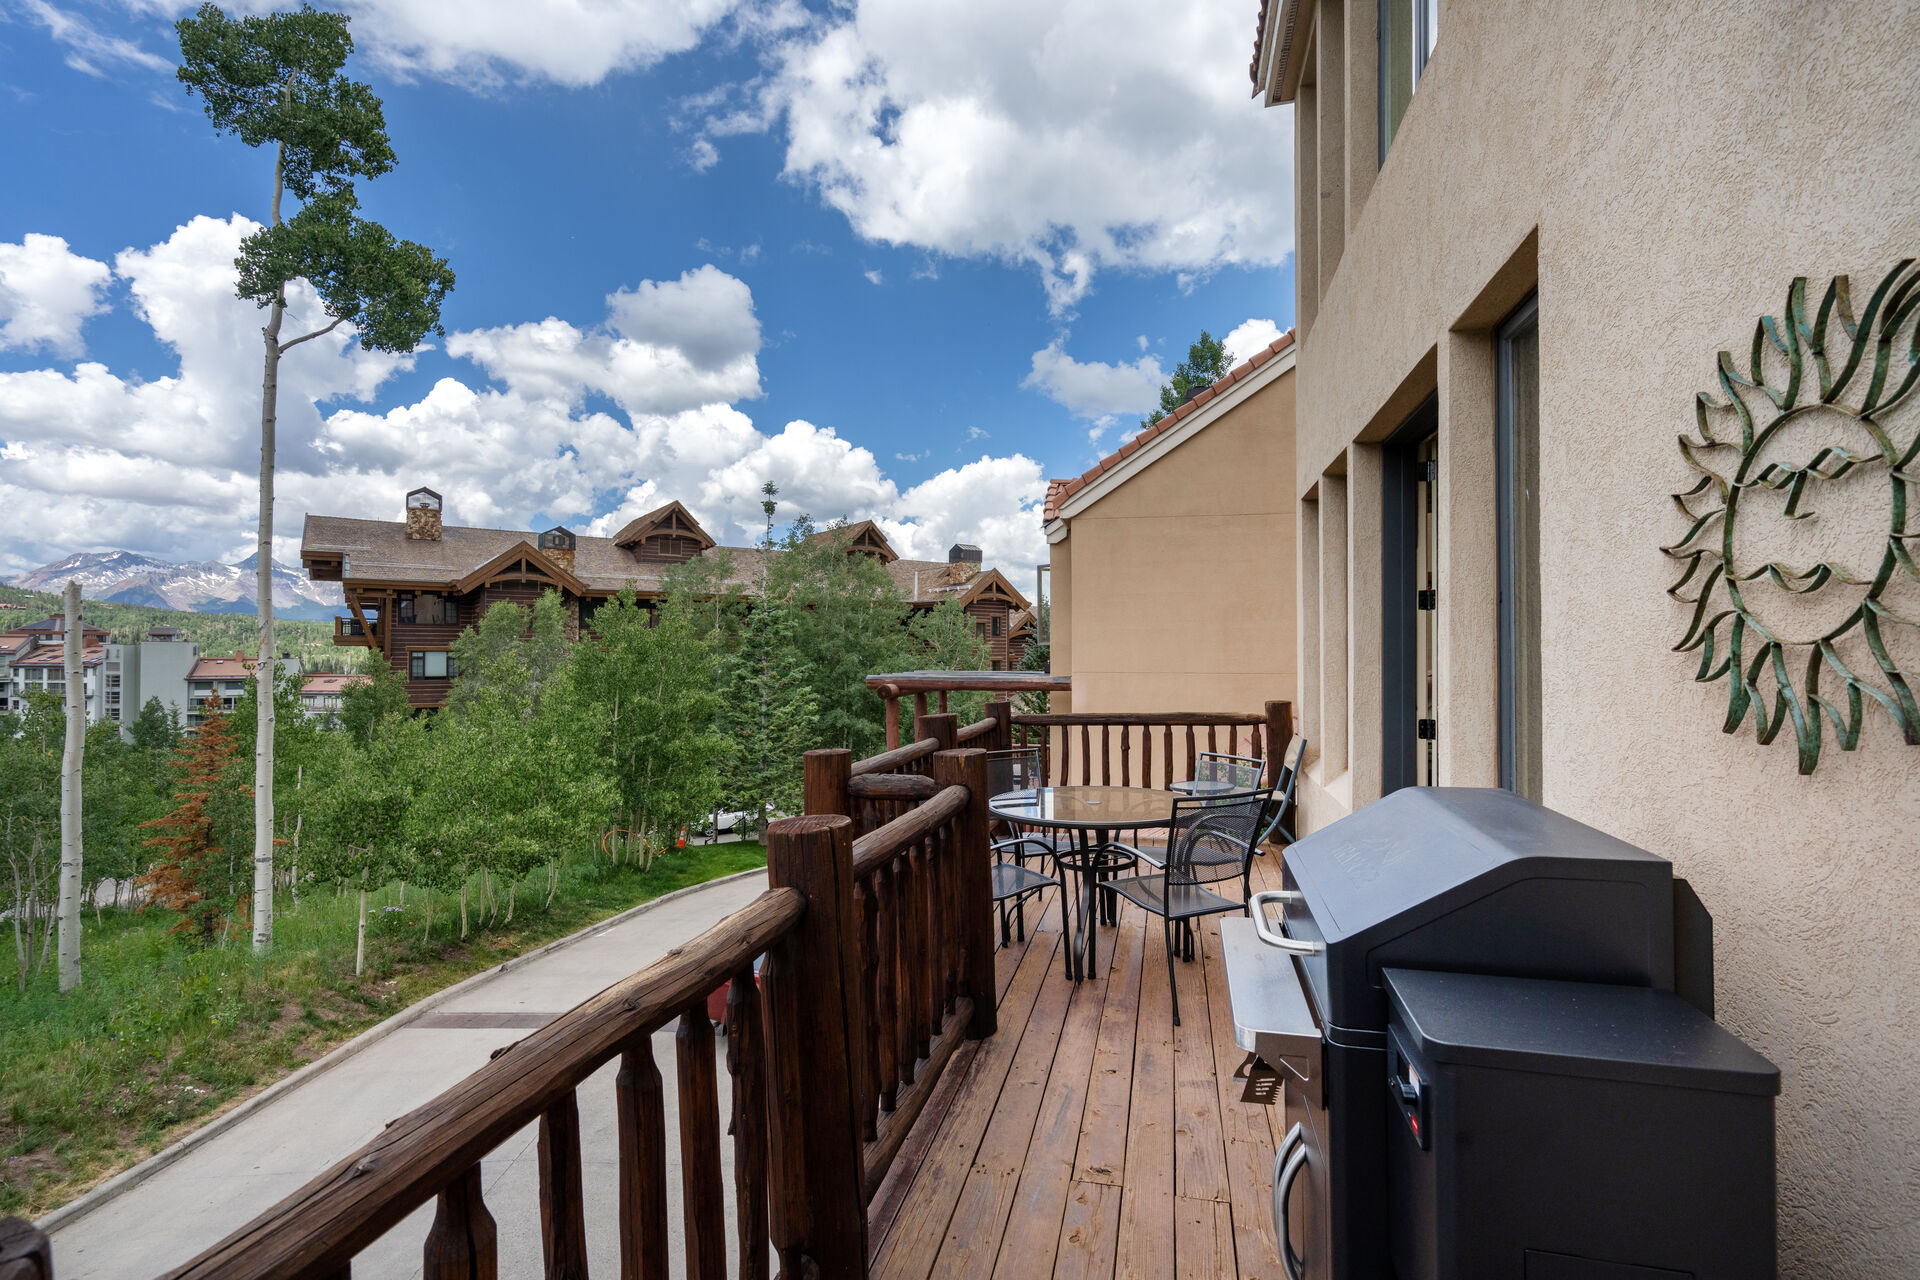 Wood balcony with gas grill